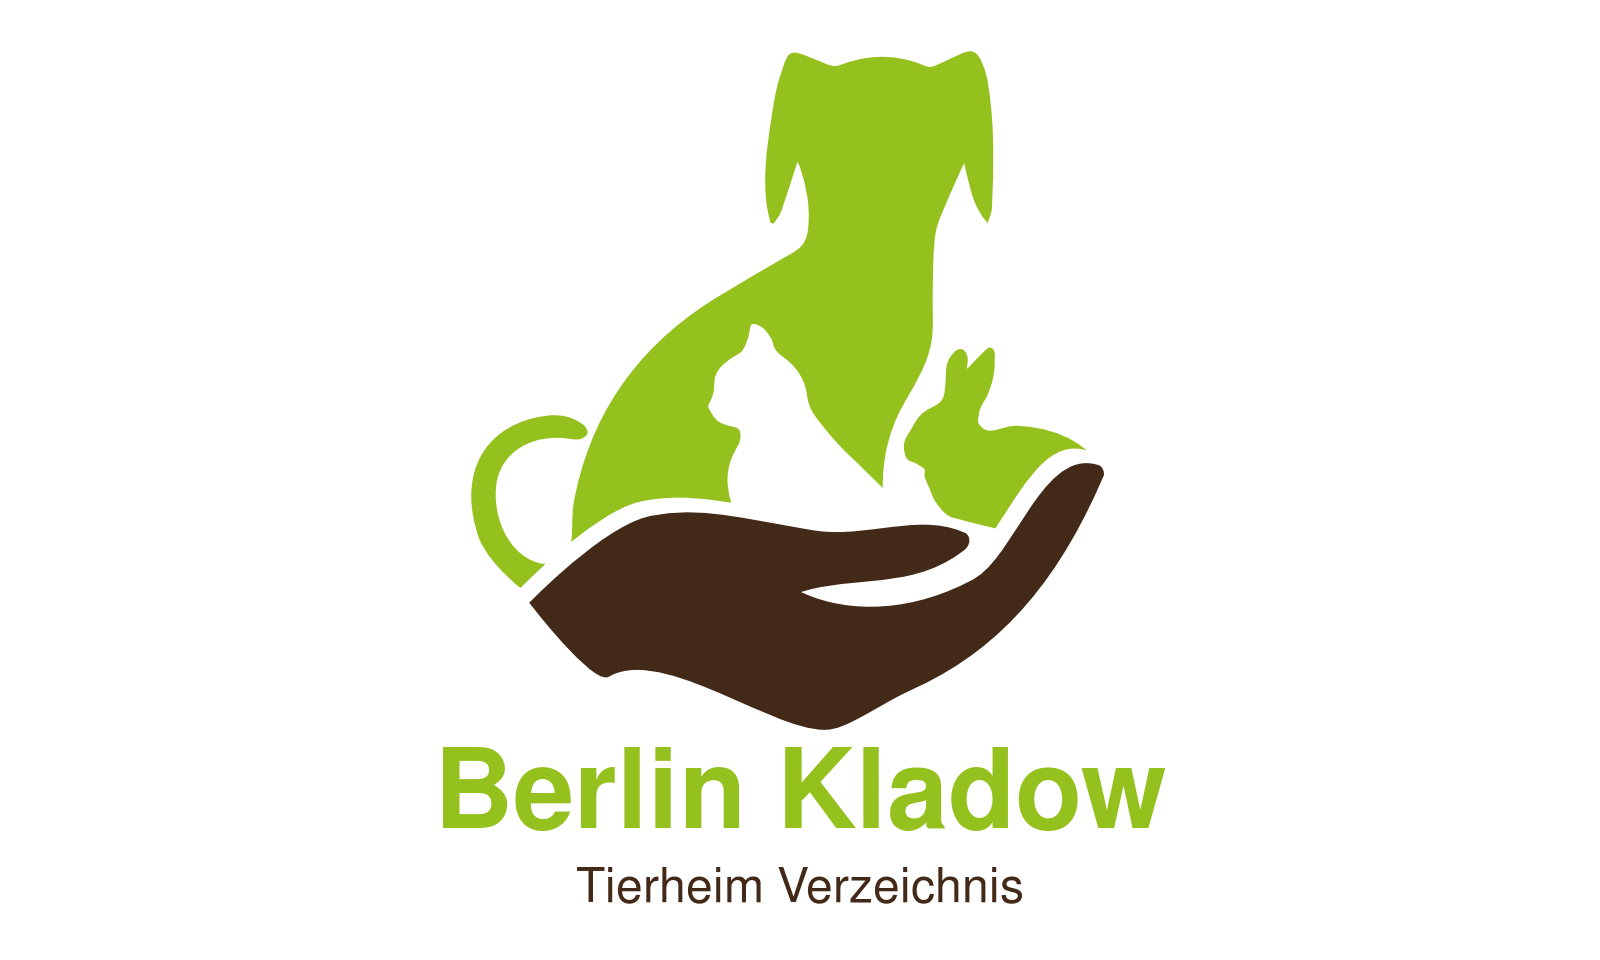 Tierheim Berlin Kladow